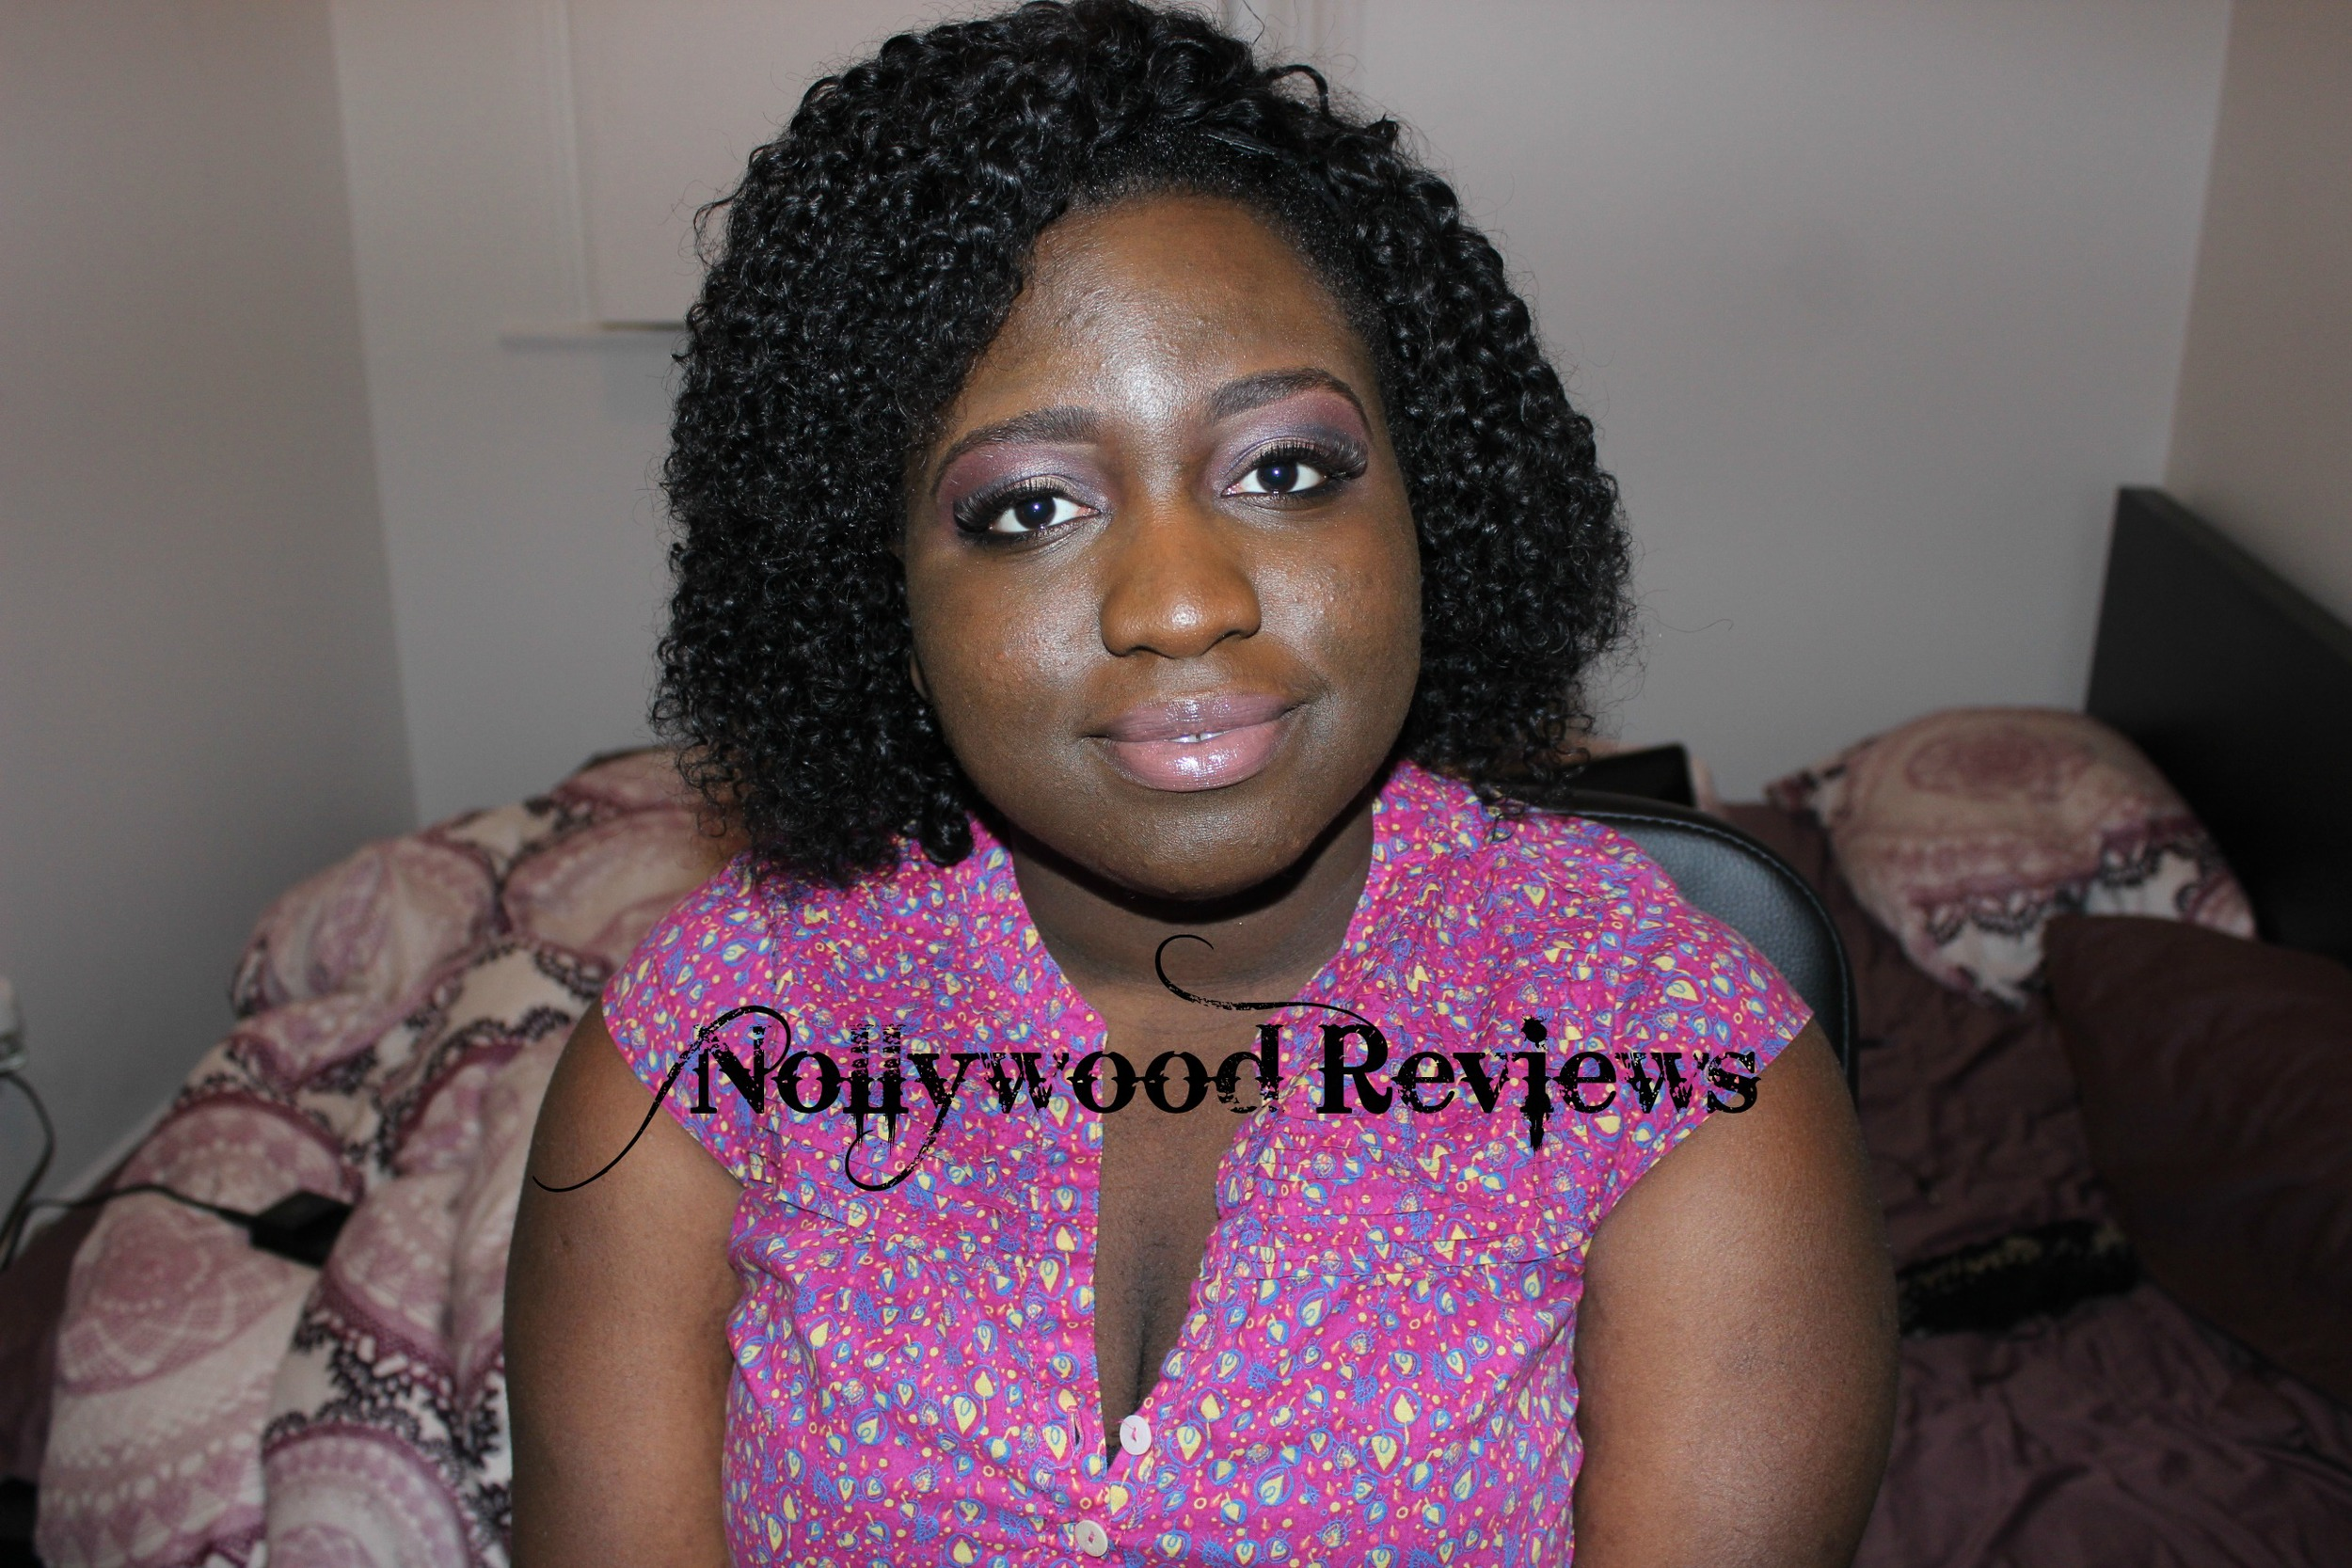 nollywood review pic